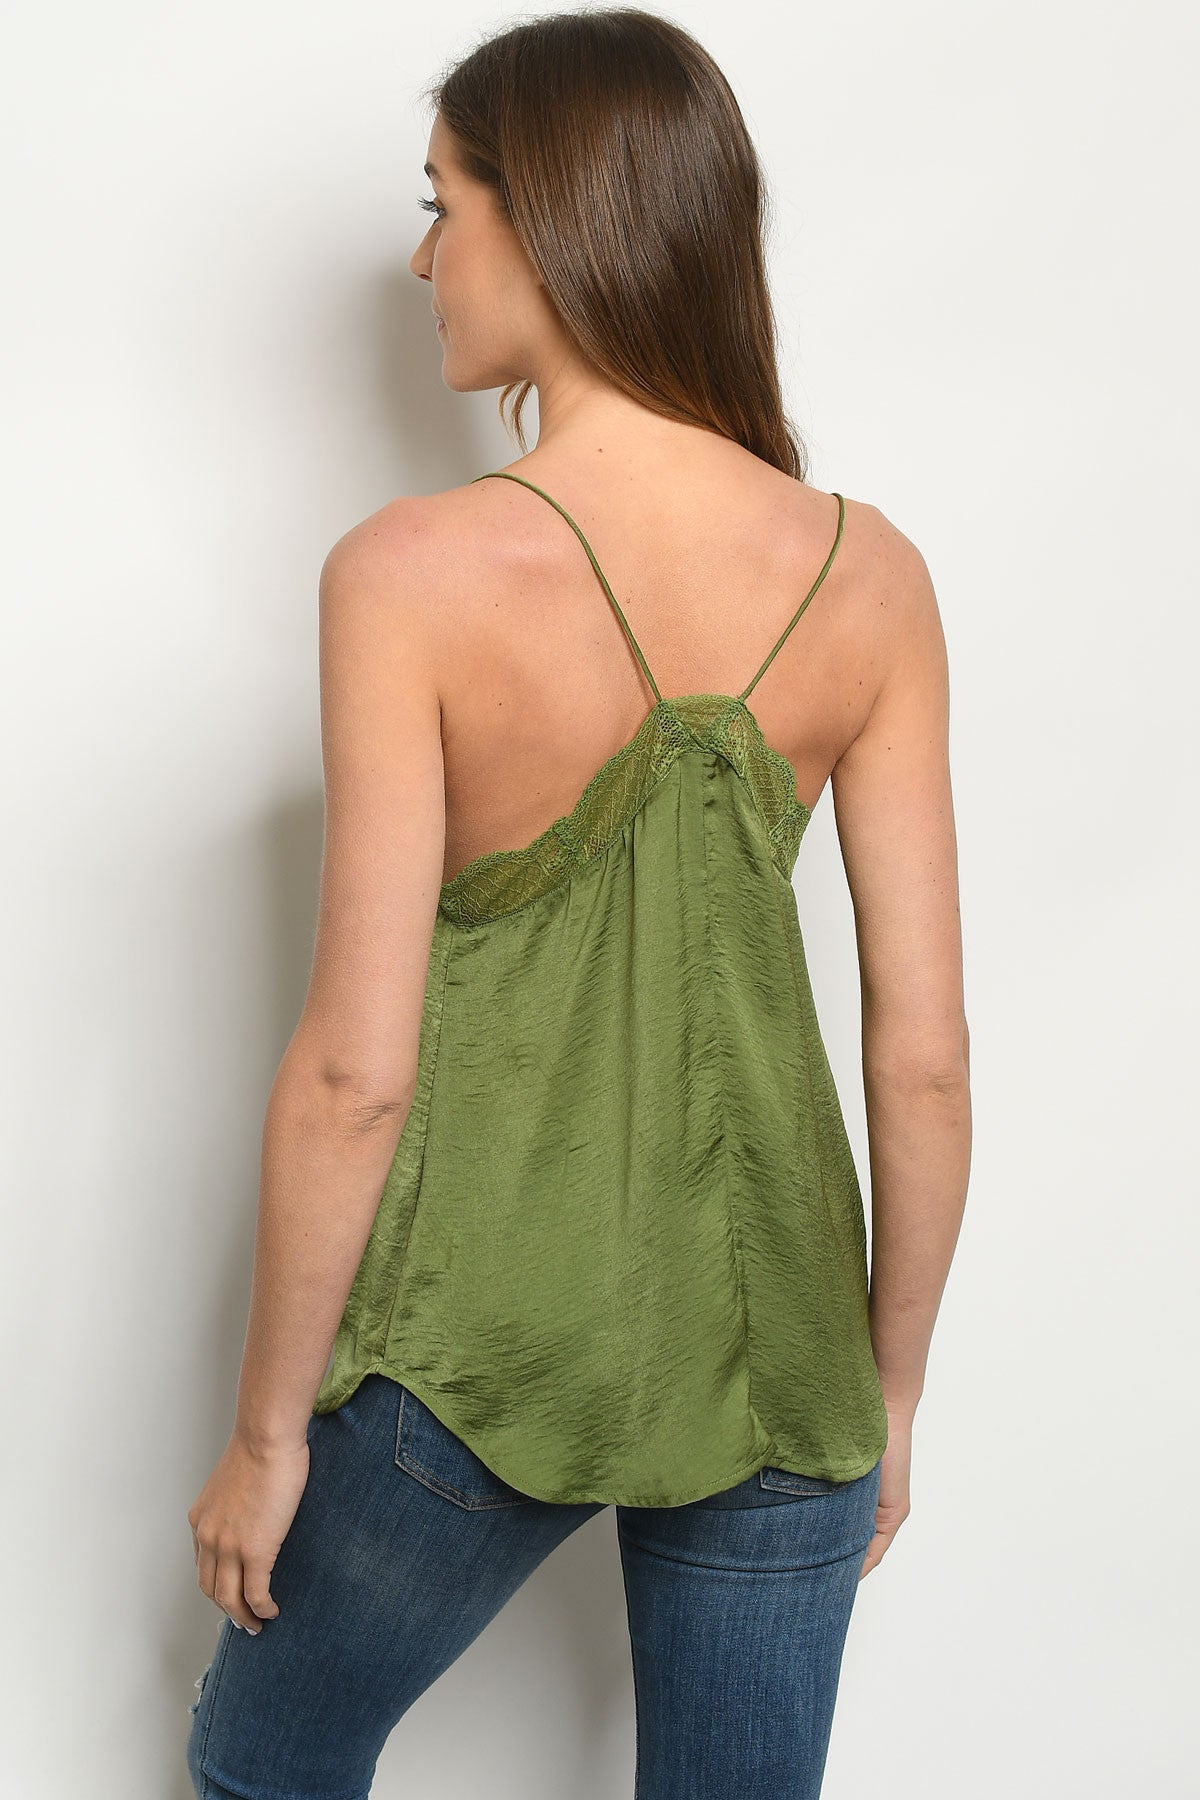 Play To Lace The Olive Top